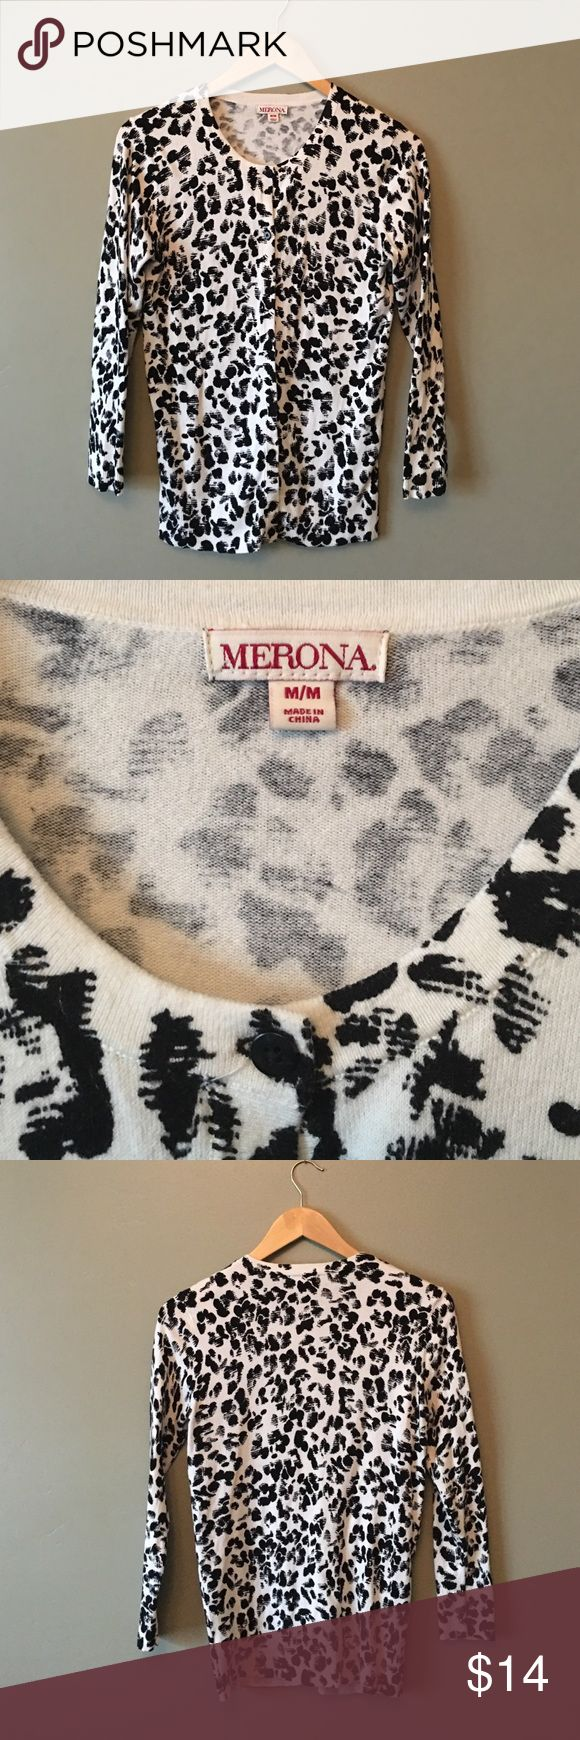 Merona leopard sweater Merona leopard sweater. Great for winter layering! Merona Sweaters Cardigans